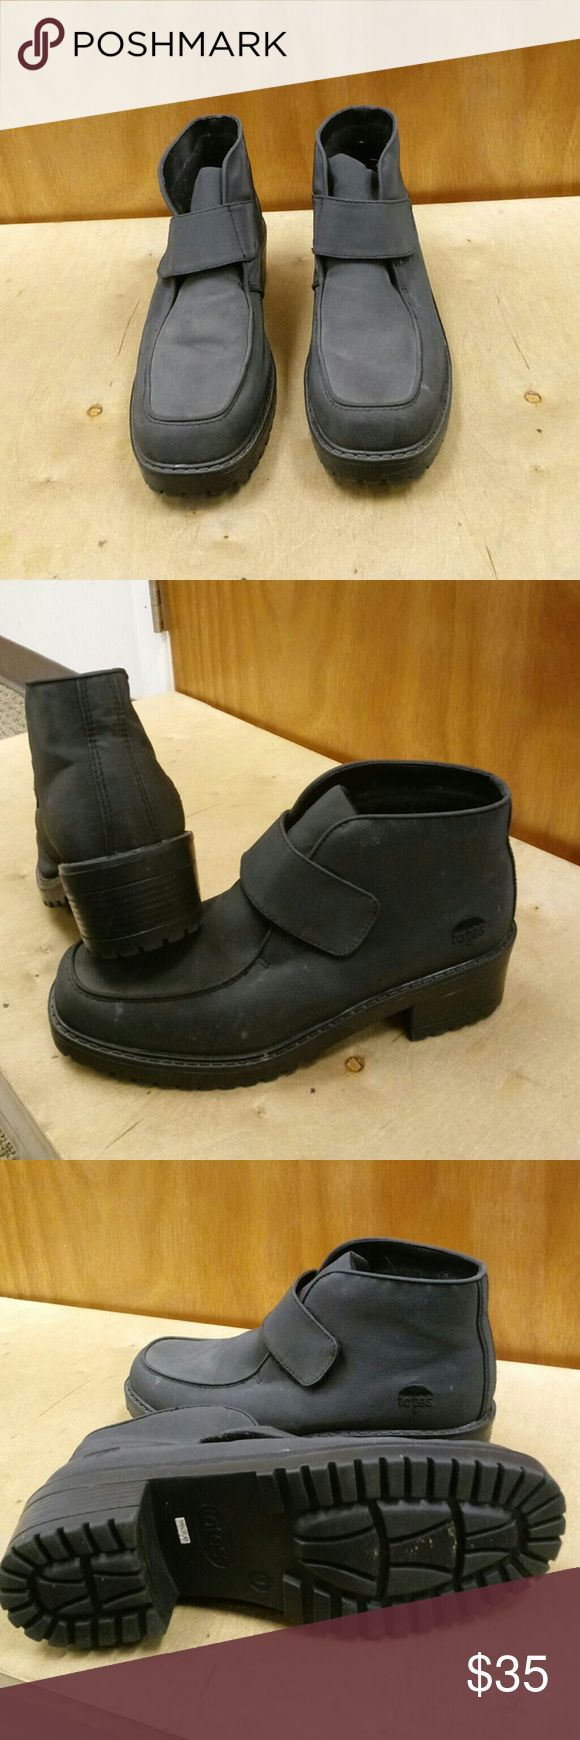 Mens rain boot Water proof Made in China totes Shoes Boots